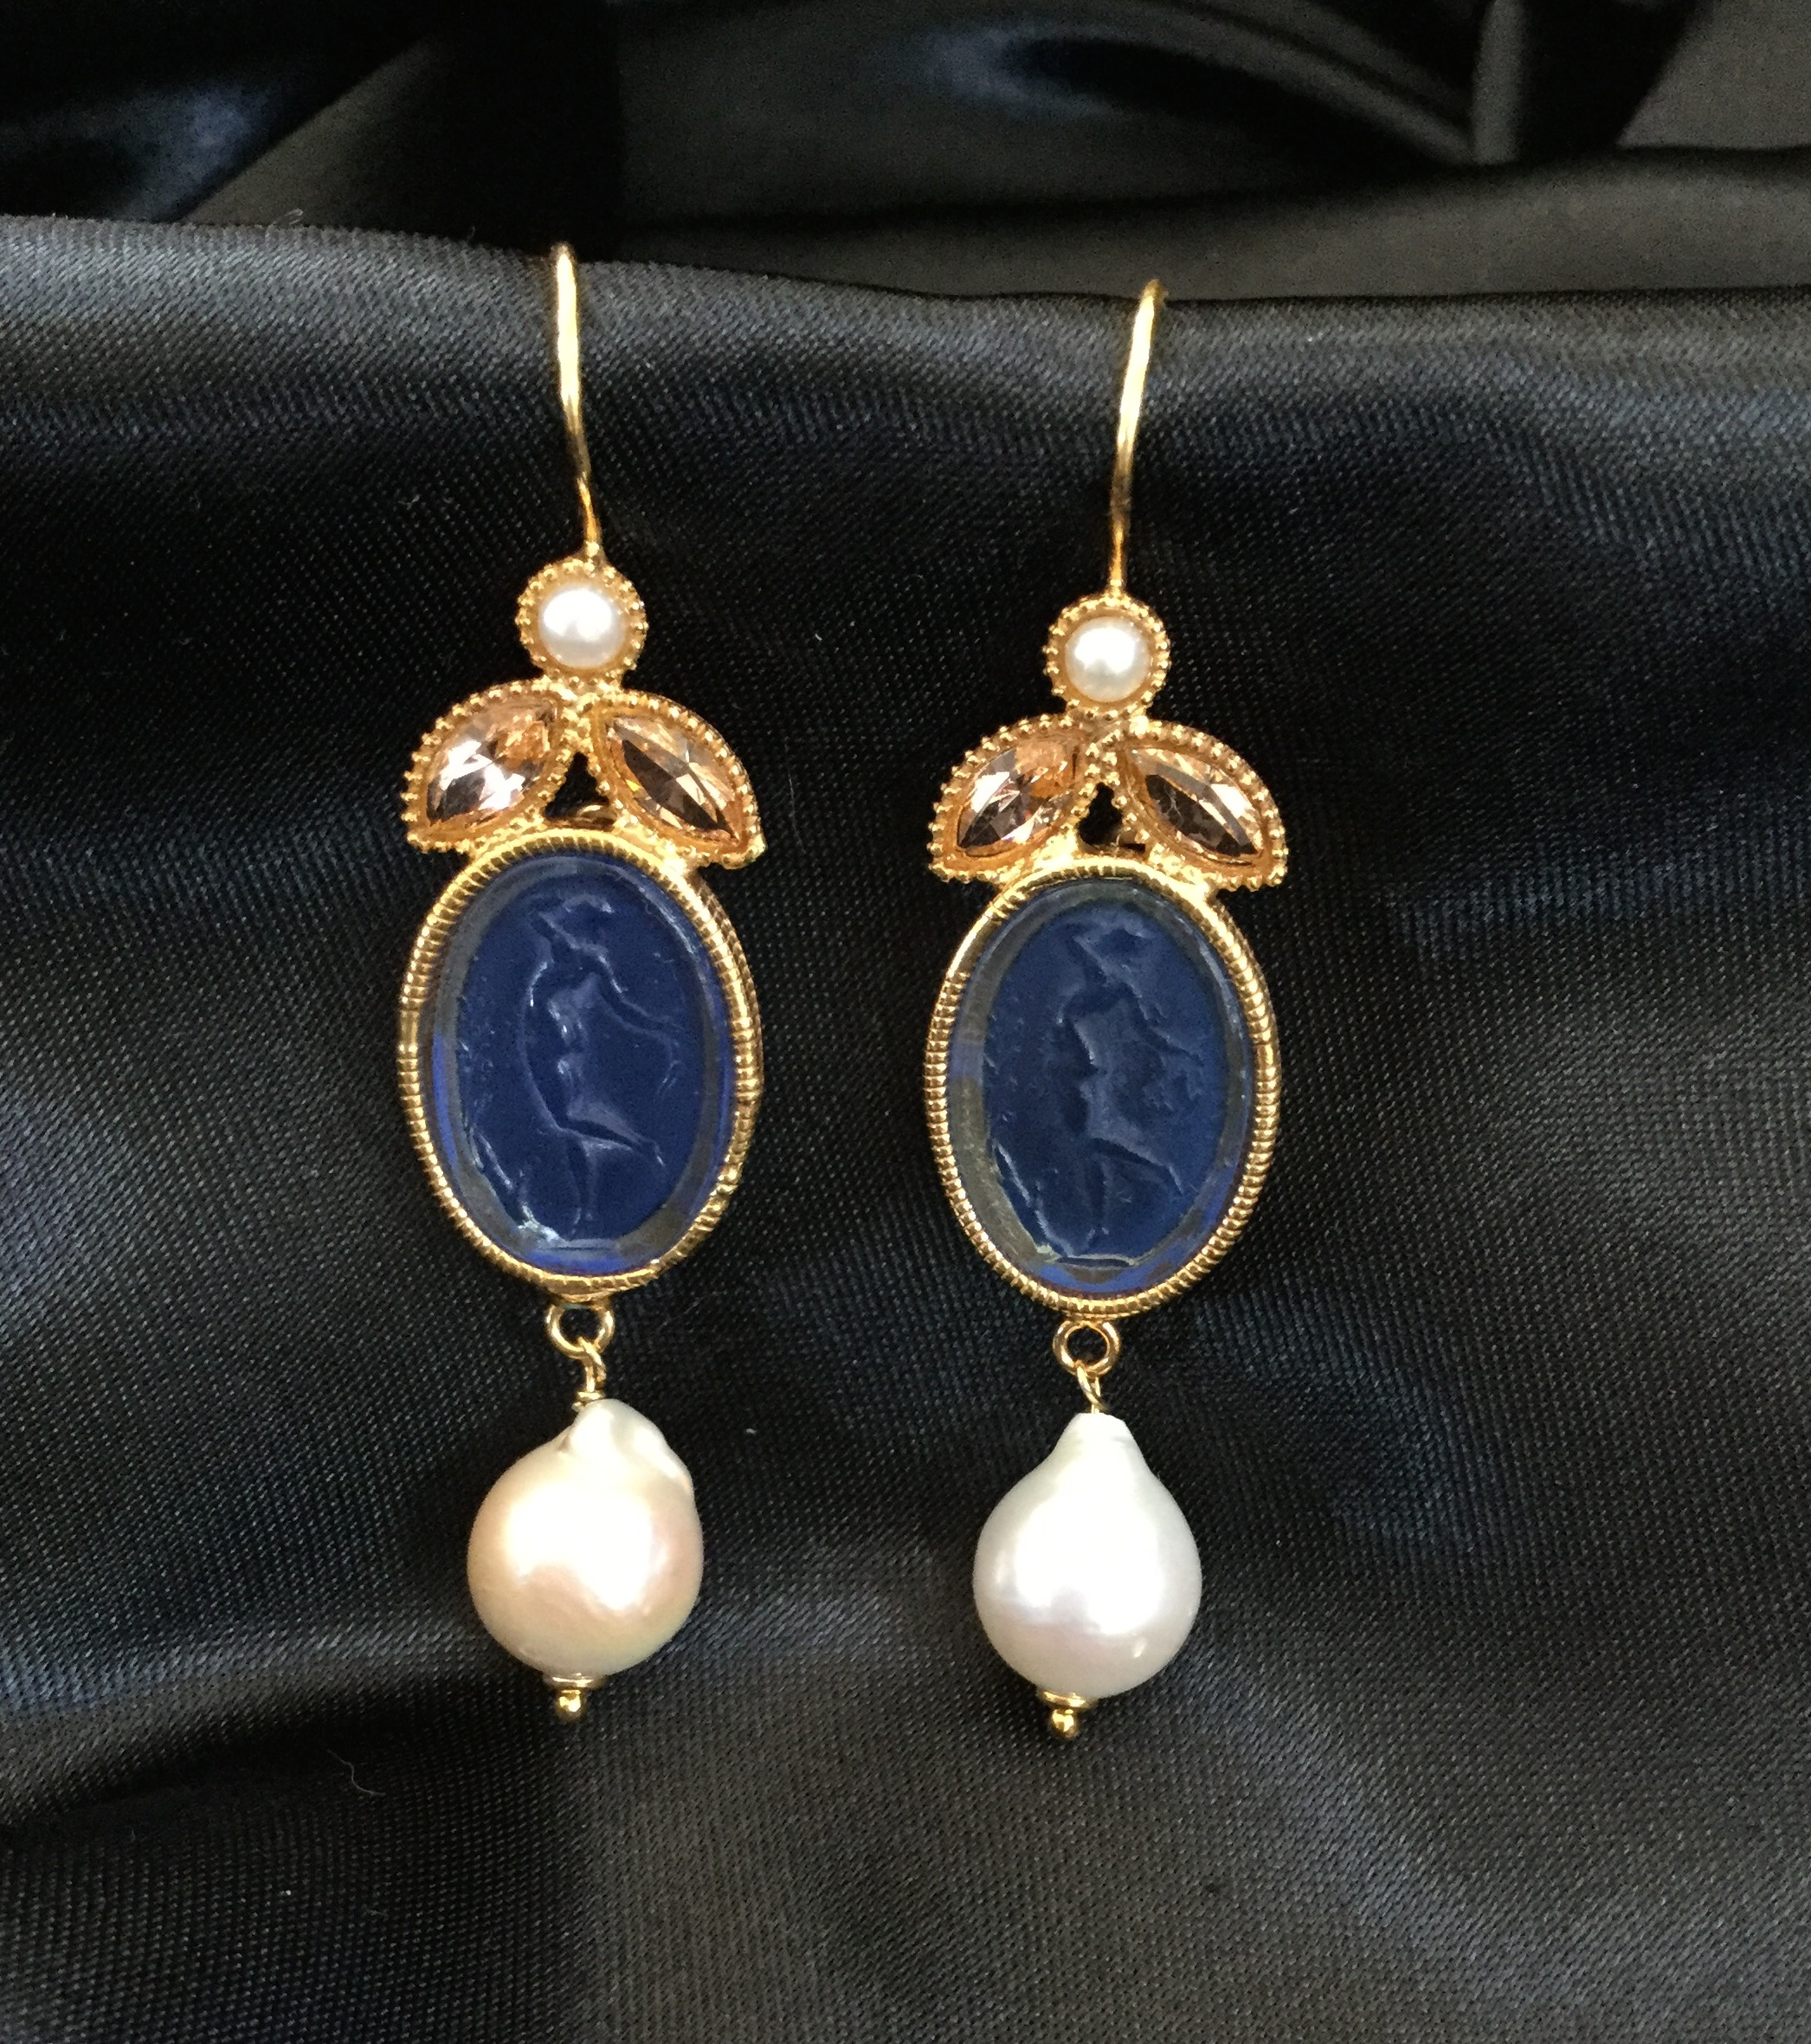 Medium Blue Intaglio Earrings With Pink Stone And Pearl Embellishments